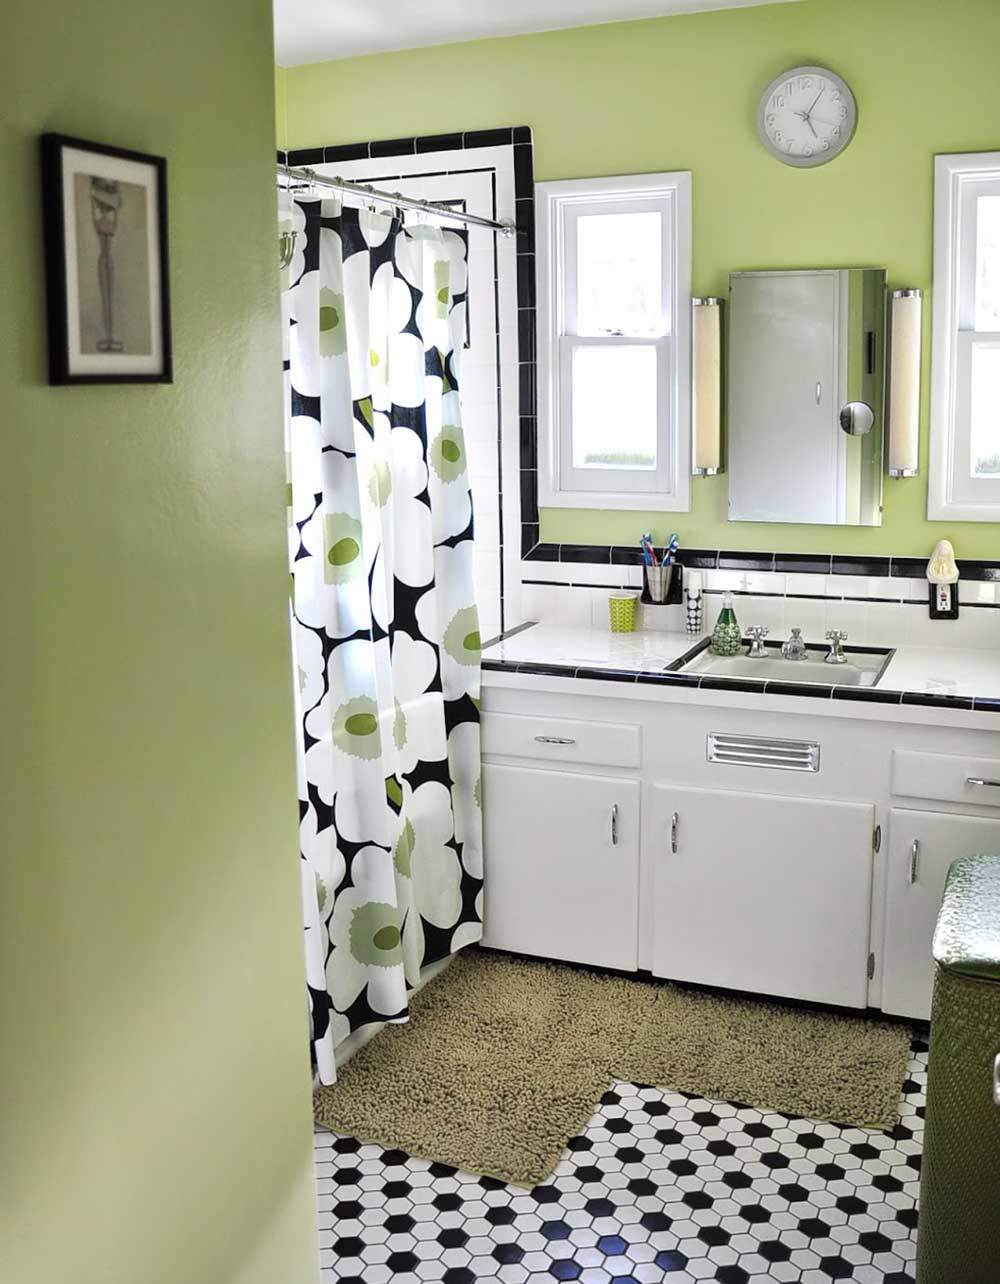 Bathroom designs black and white tiles - Vintage Black And White Tile Bathroom